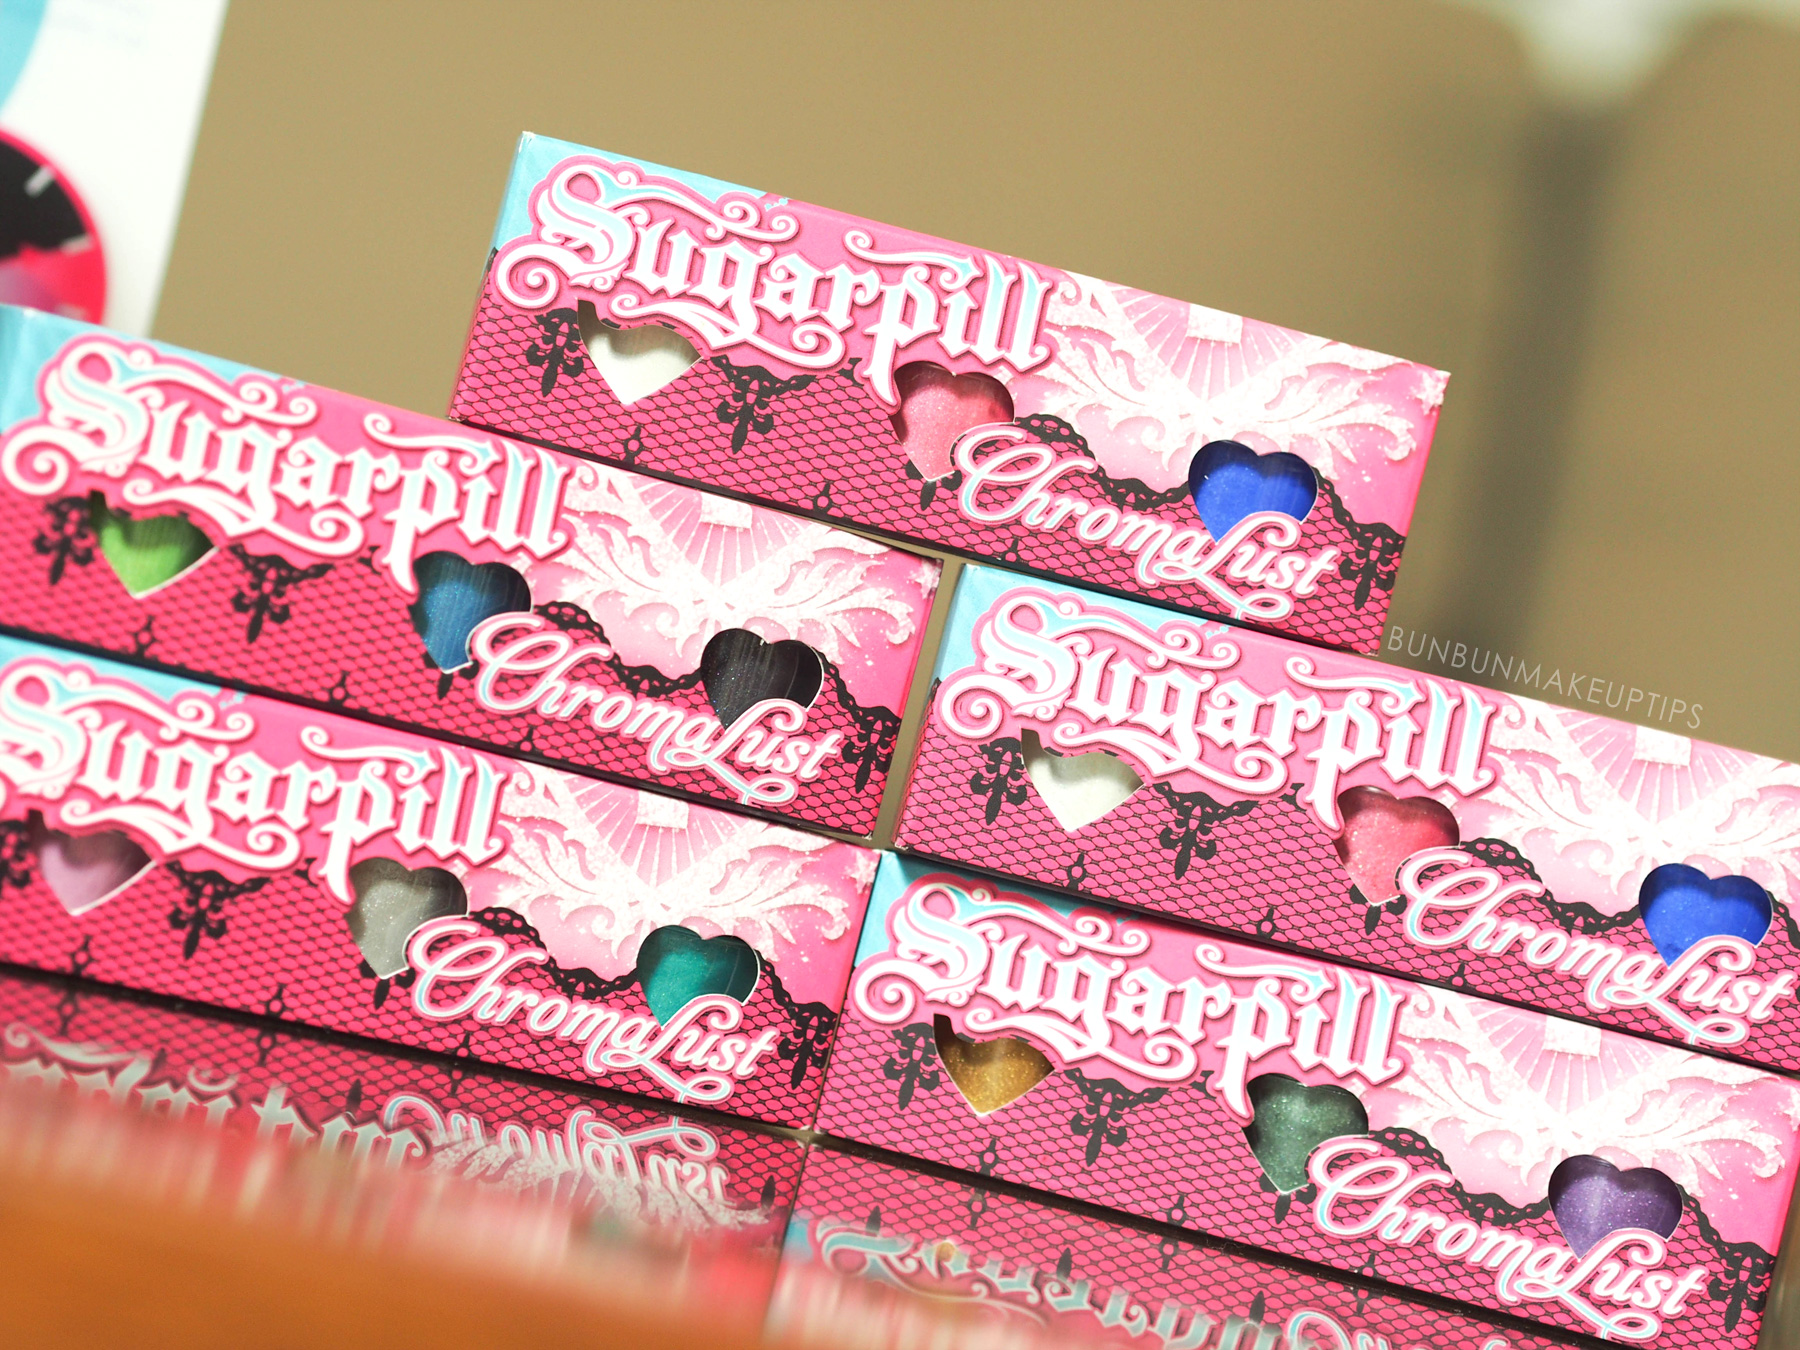 Gumtree-Doll-To-Doll-Cosmetics-Collaboration_7_Sugarpill